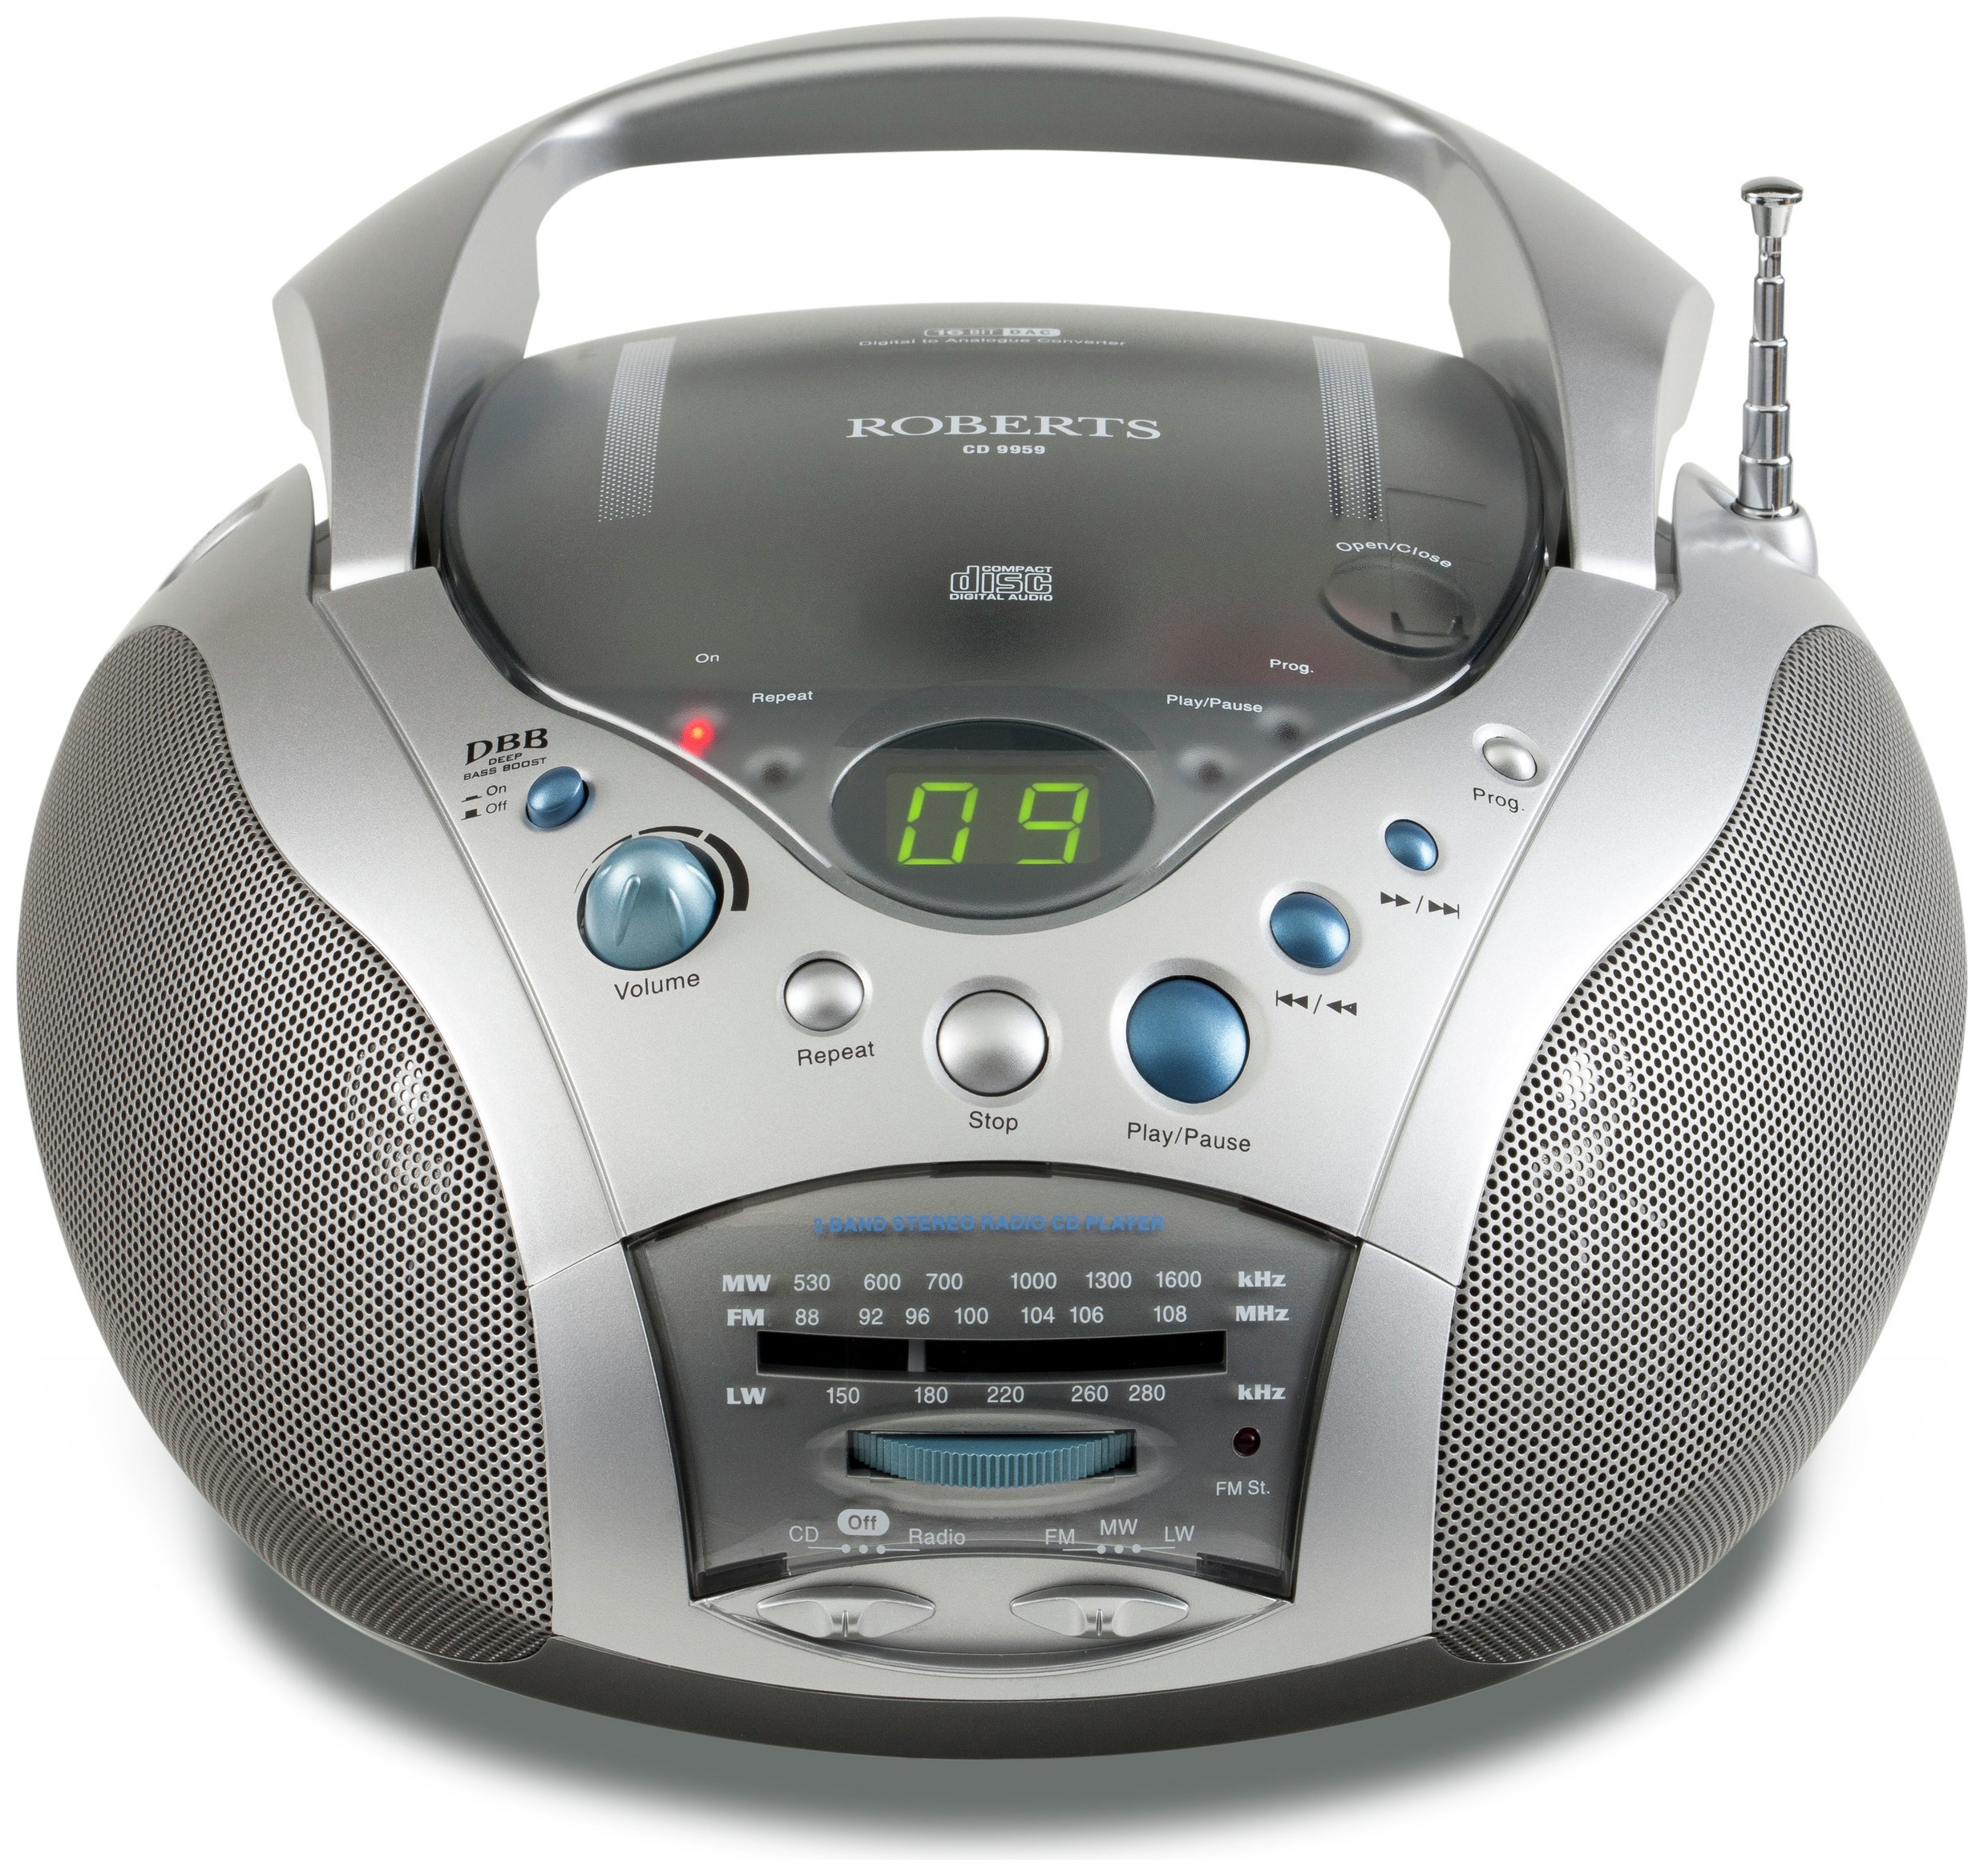 Roberts - CD9959 Swallow CD Player - Silver